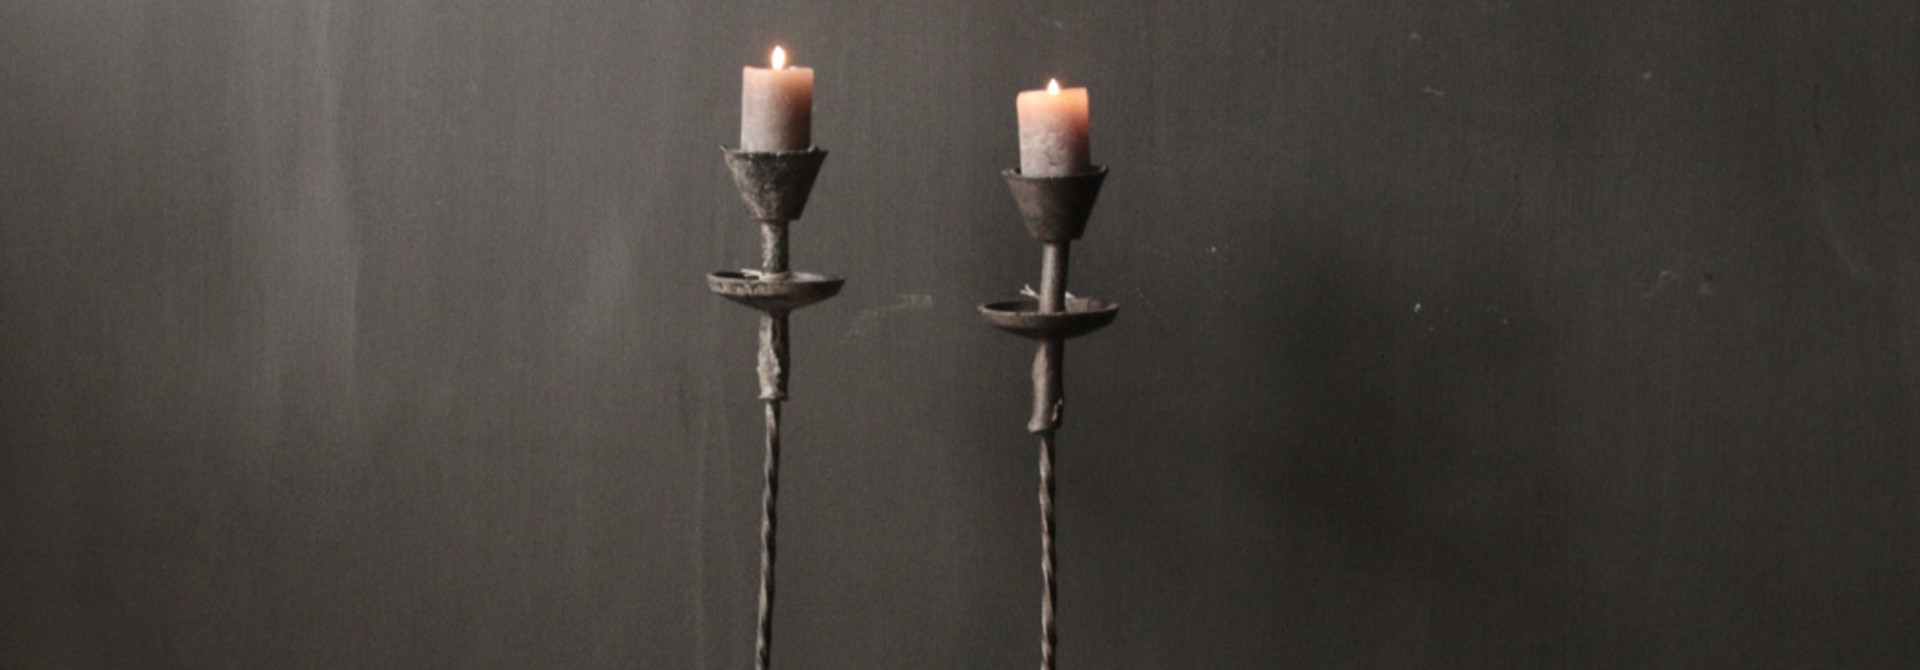 Authentic iron candlestick